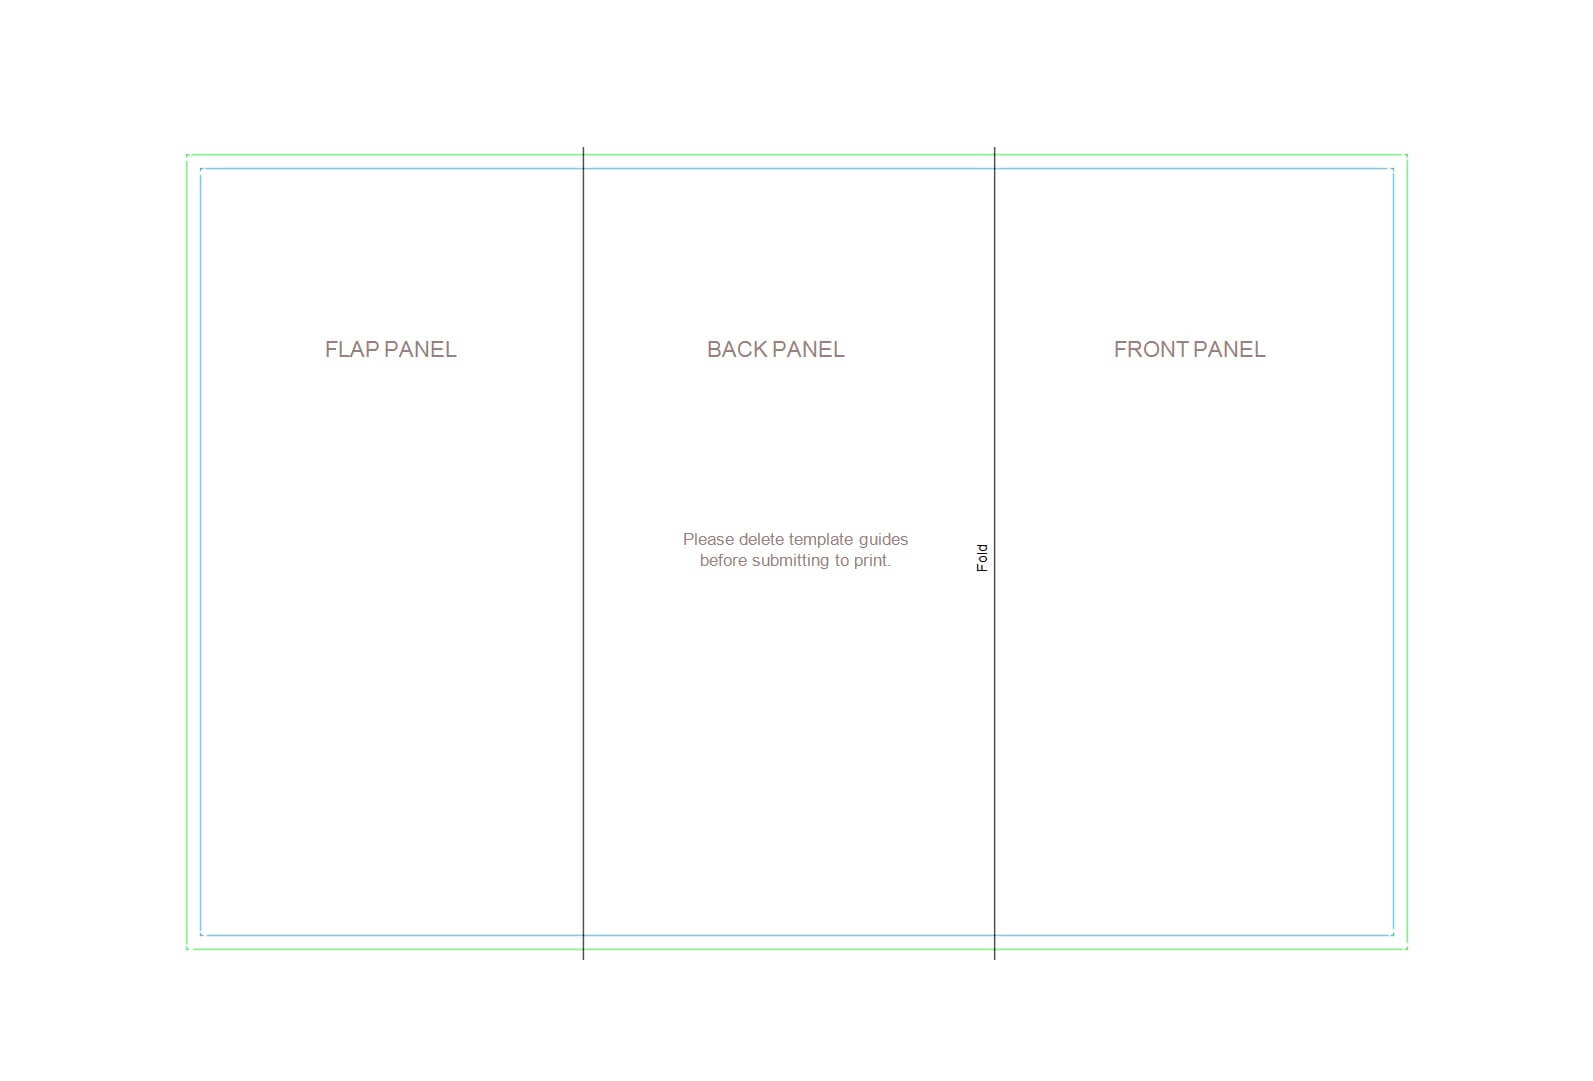 50 Free Pamphlet Templates [Word / Google Docs] ᐅ Template Lab Throughout Brochure Template Google Docs